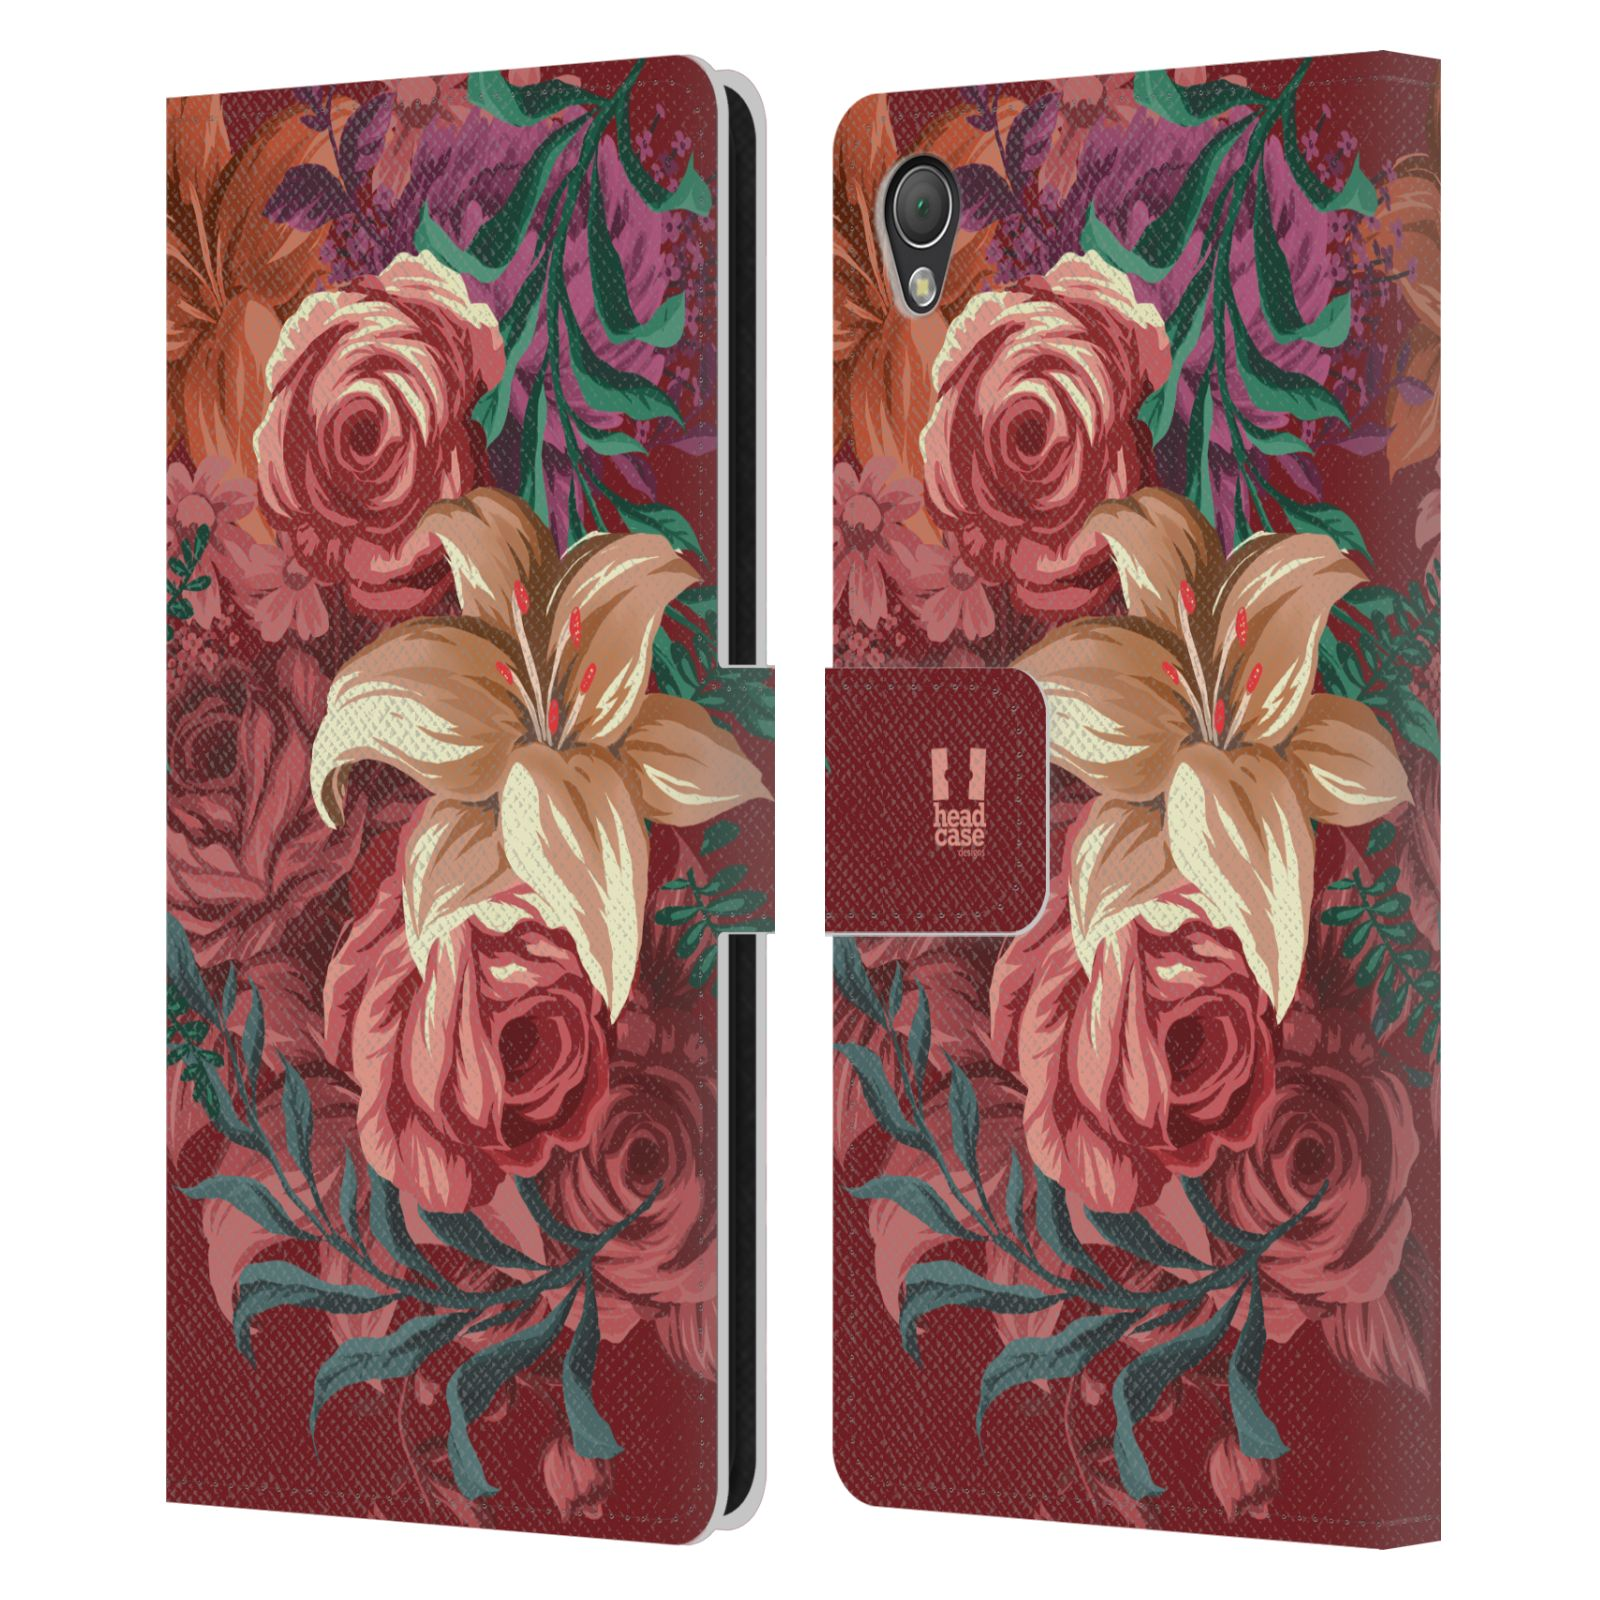 HEAD CASE DESIGNS MARSALA TRENDS LEATHER BOOK WALLET CASE FOR SONY PHONES 1